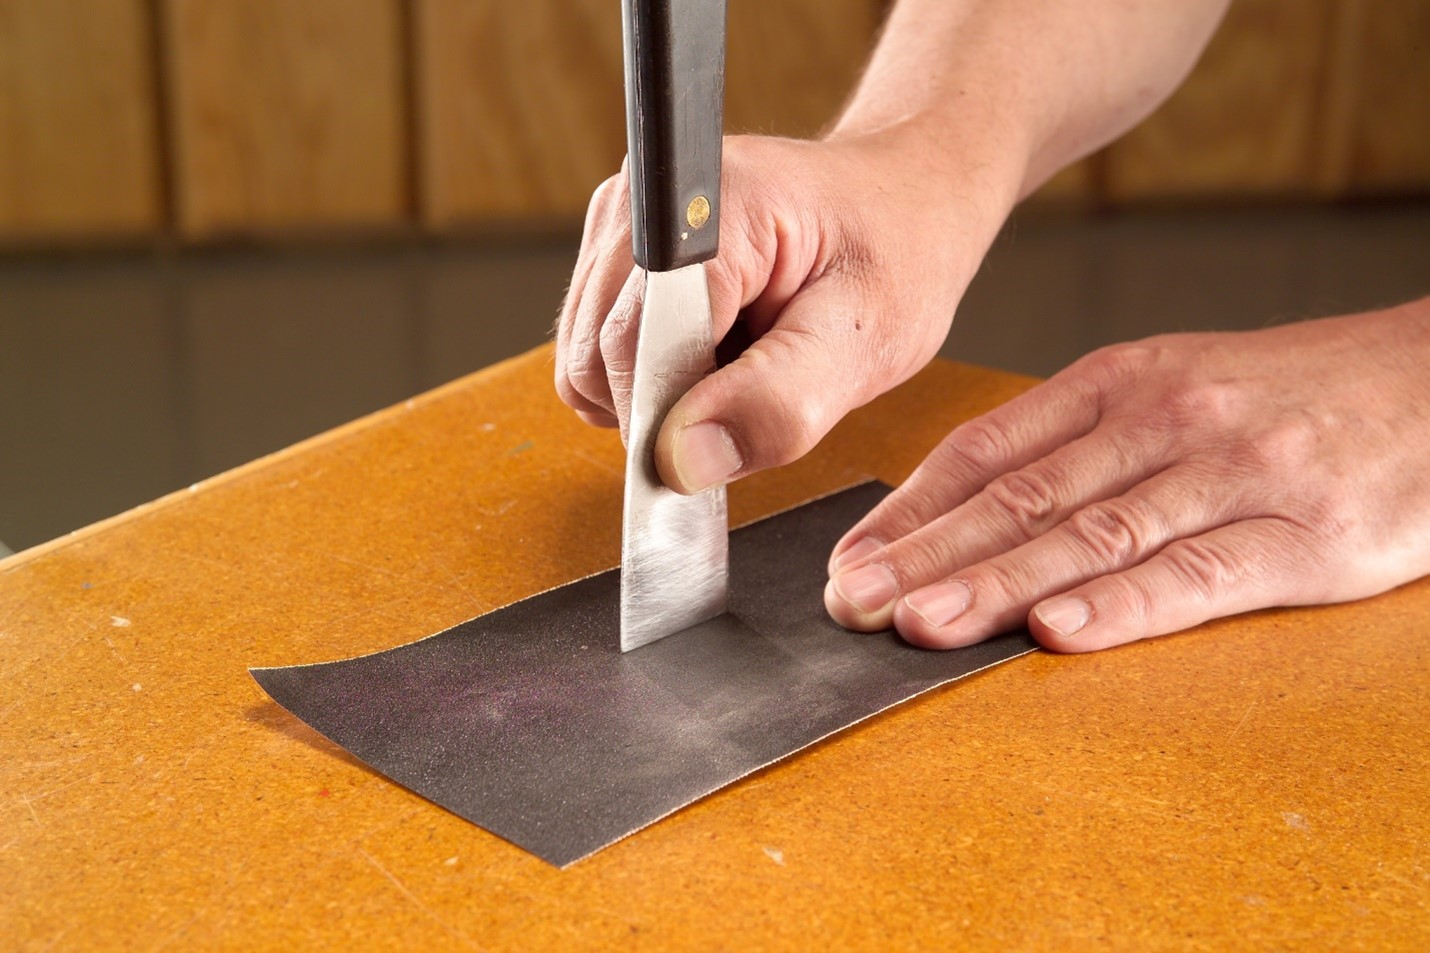 Gluing Tips and Tricks 3